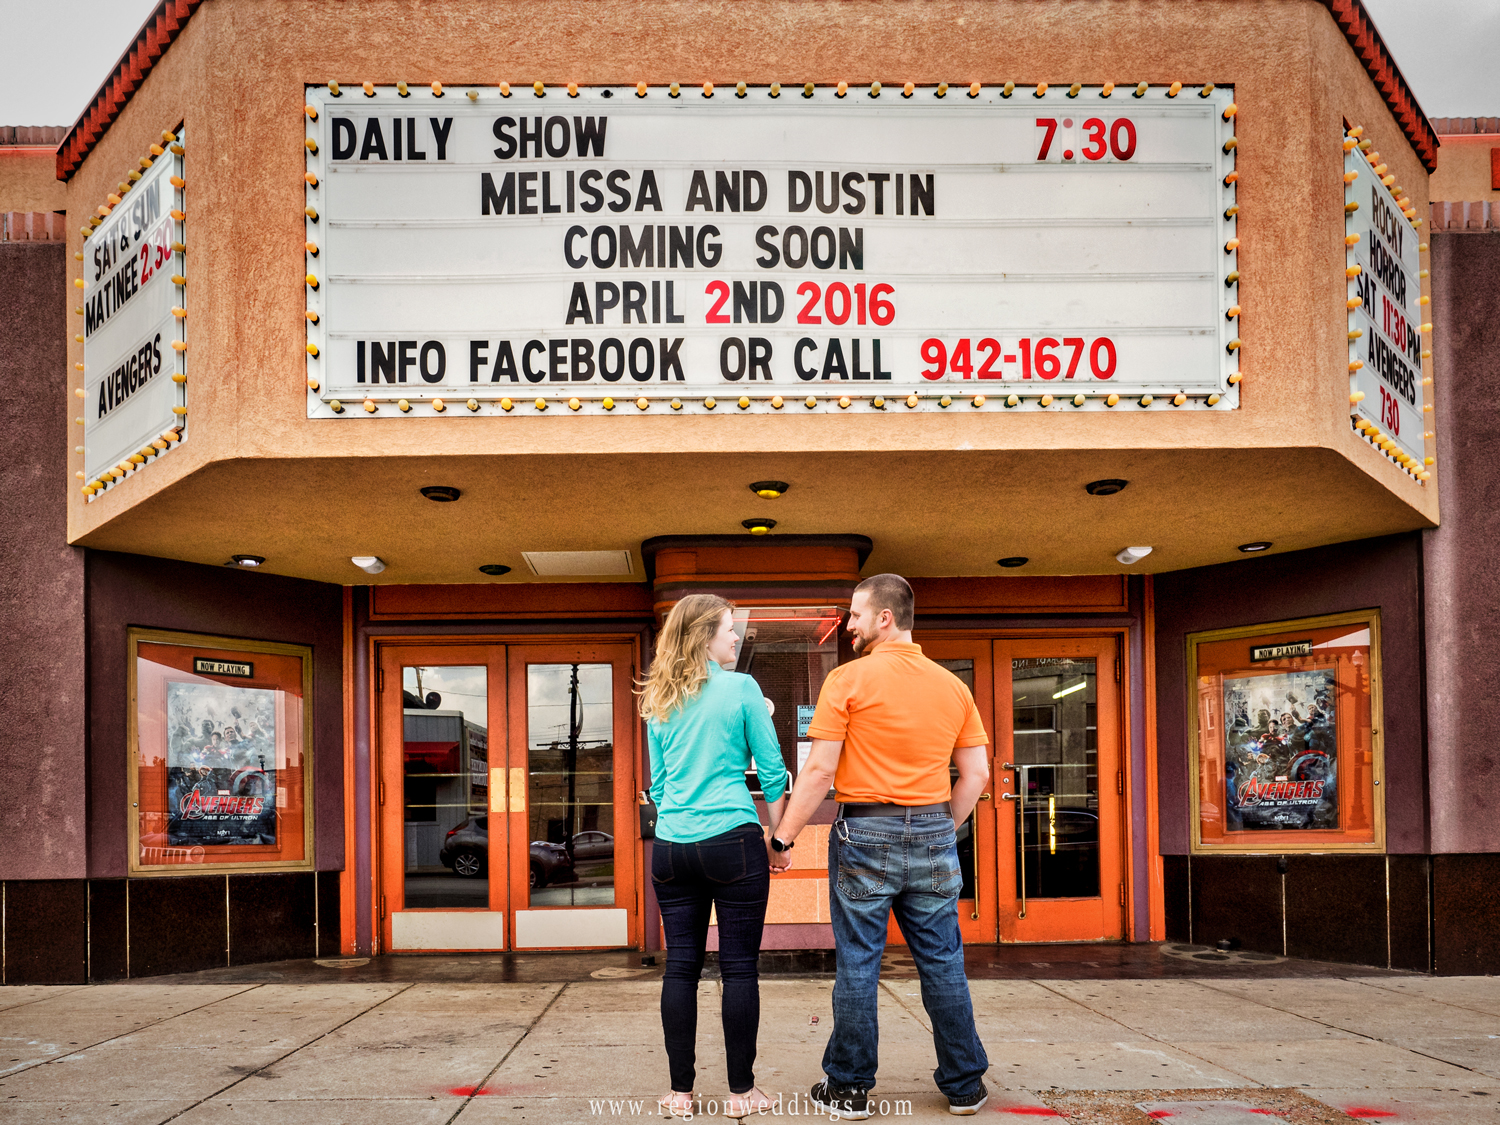 An engaged couple's names adorn the marquee at the Art Theater.